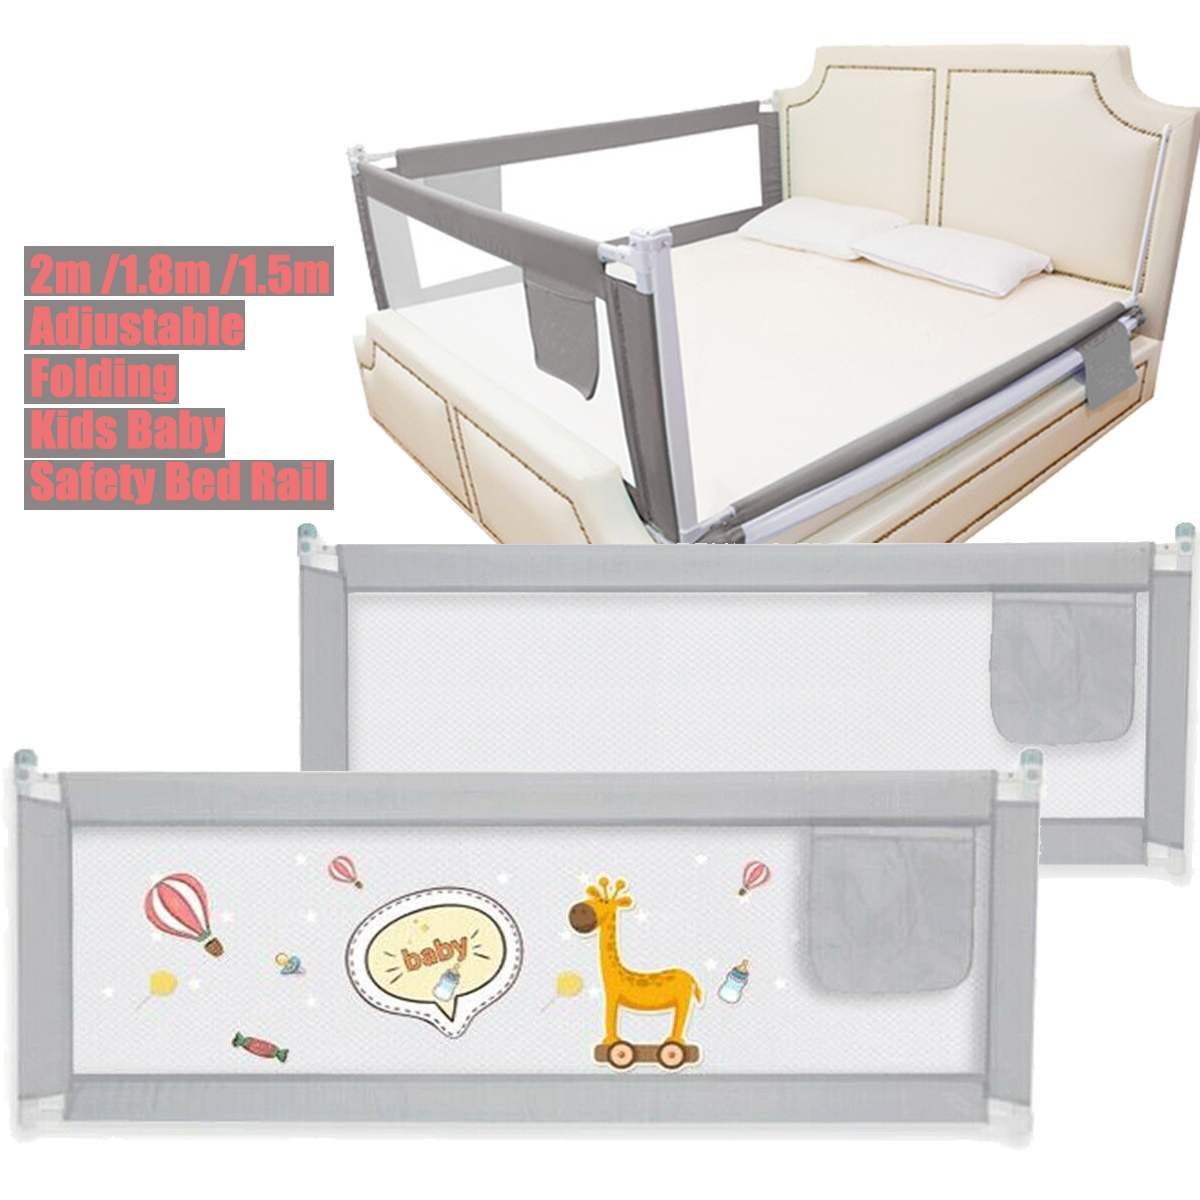 Adjustable Baby Playpen Bed Safety Rails For Babies Children Fences Fence Baby Safety Gate Crib Barrier For Kids Newborn Infants